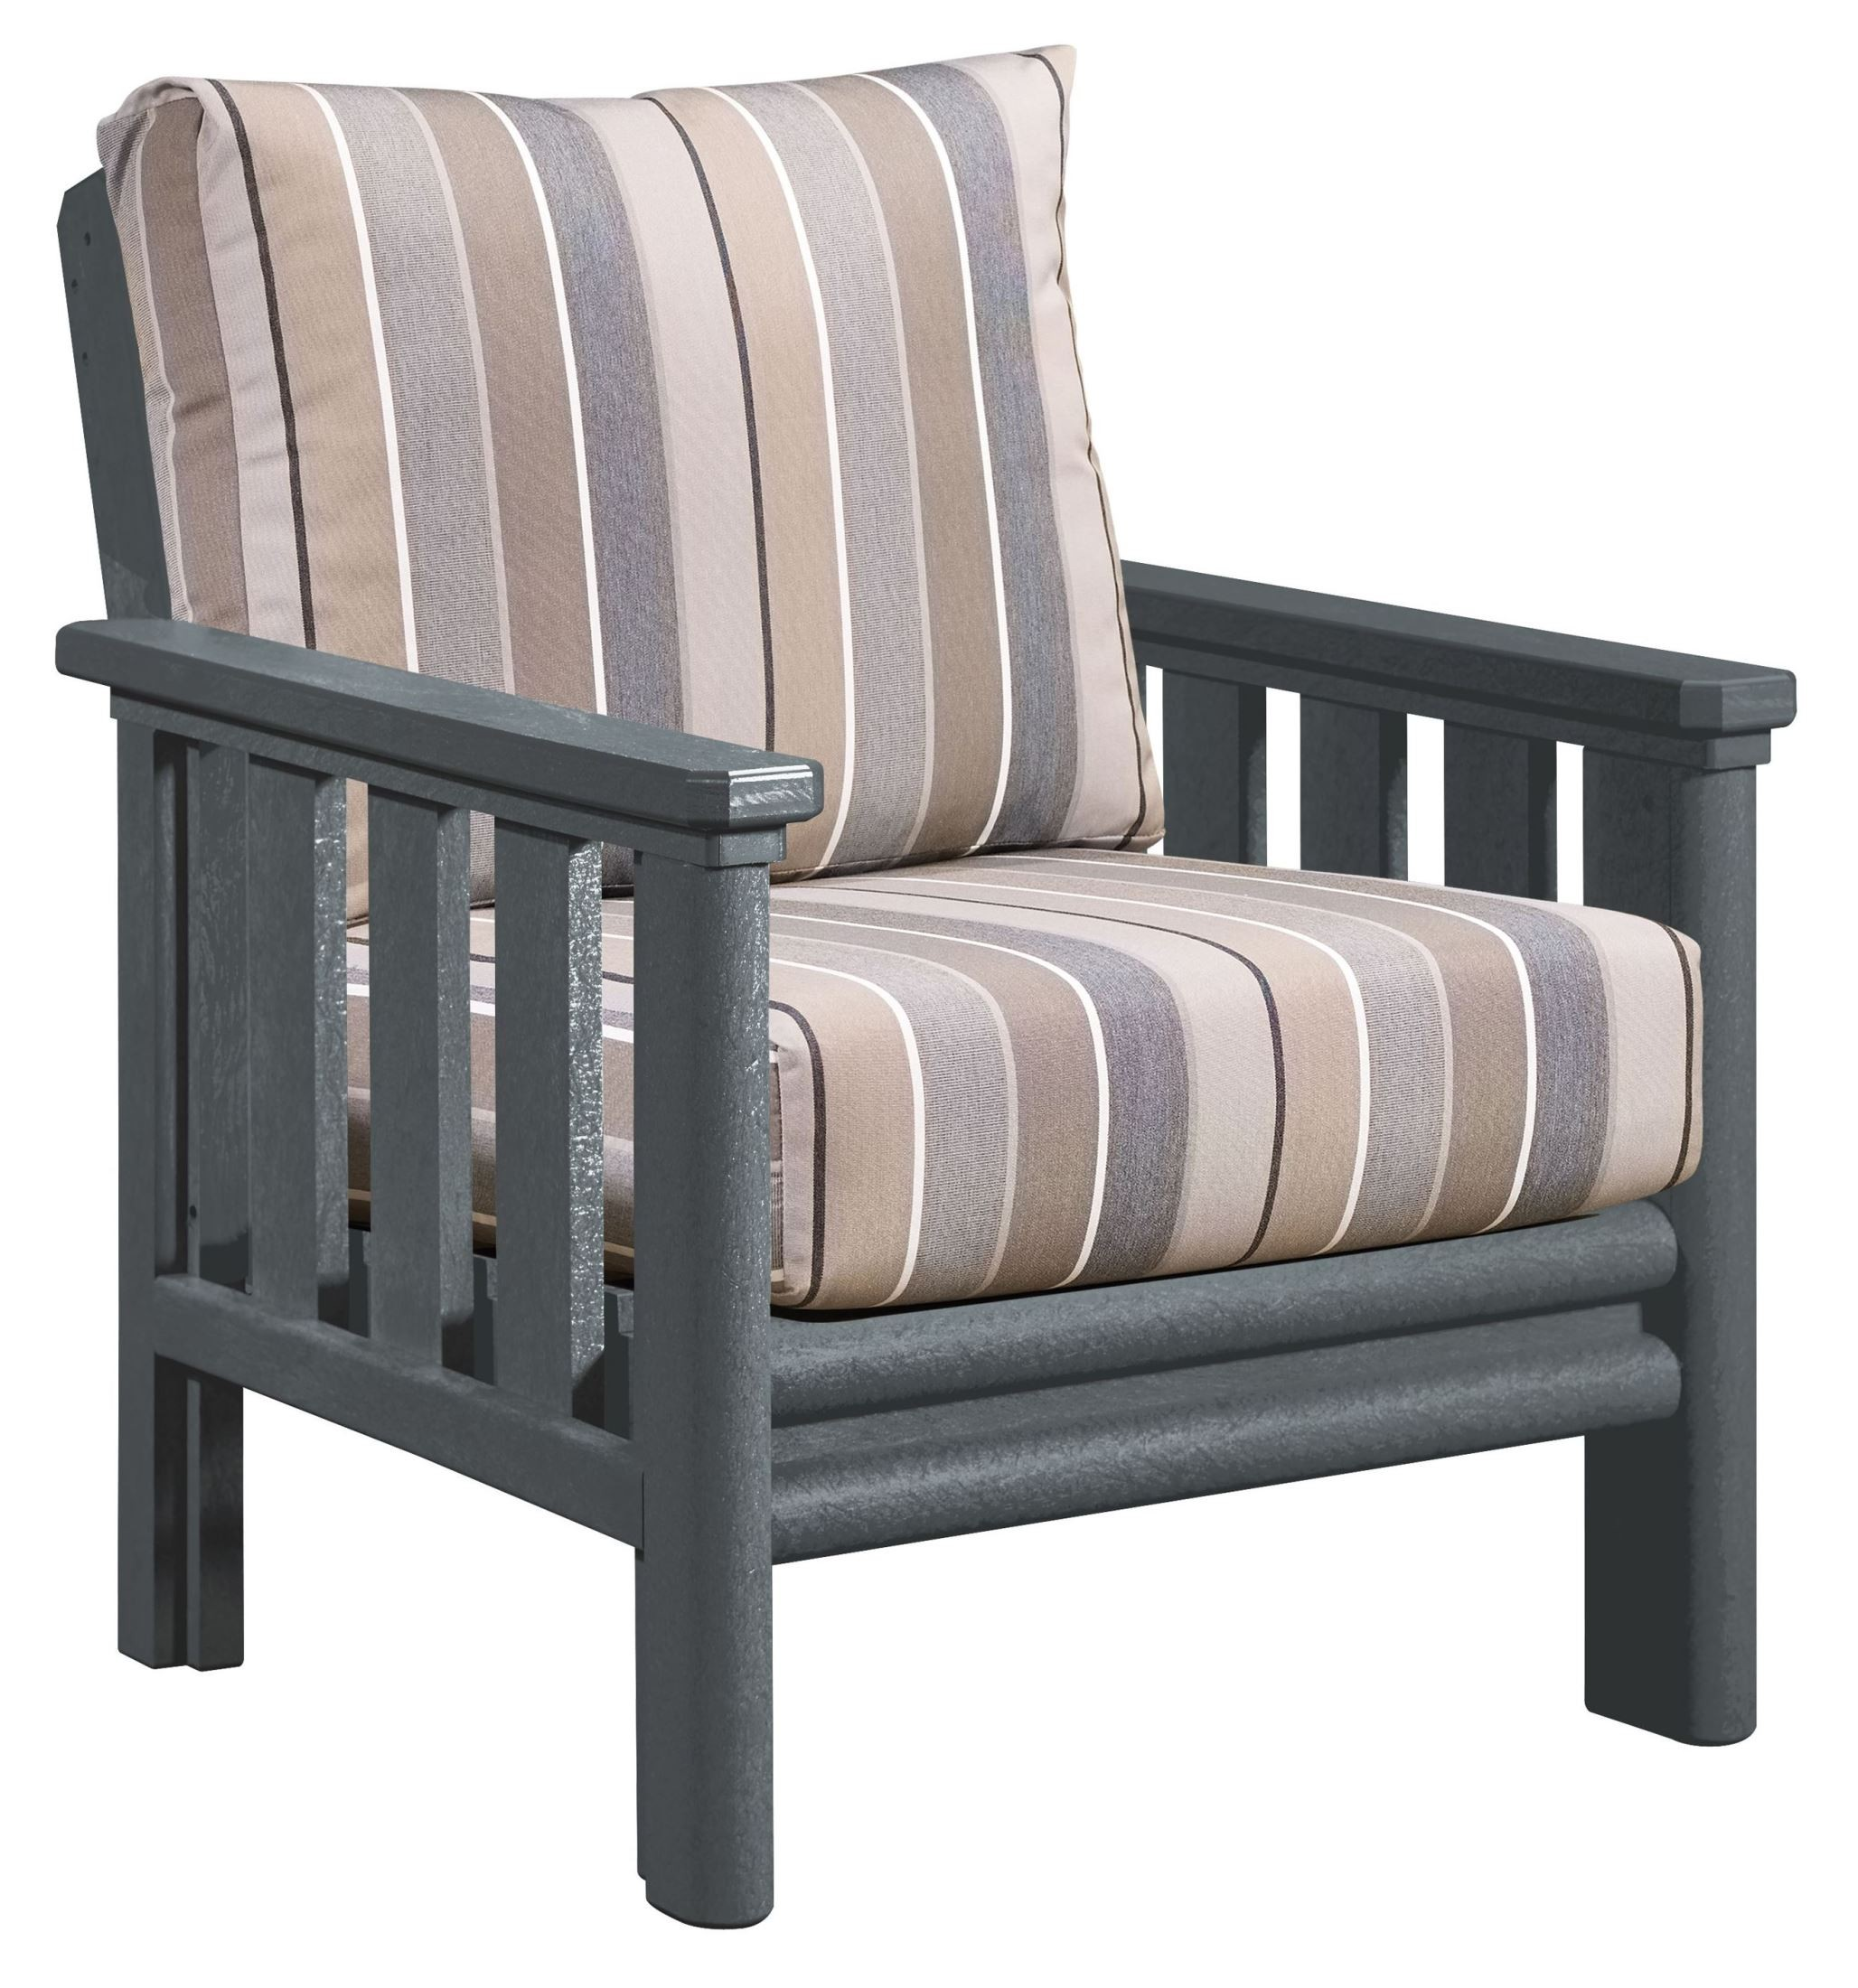 grey chair cushions patio repair kits stratford slate gray with milano charcoal sunbrella